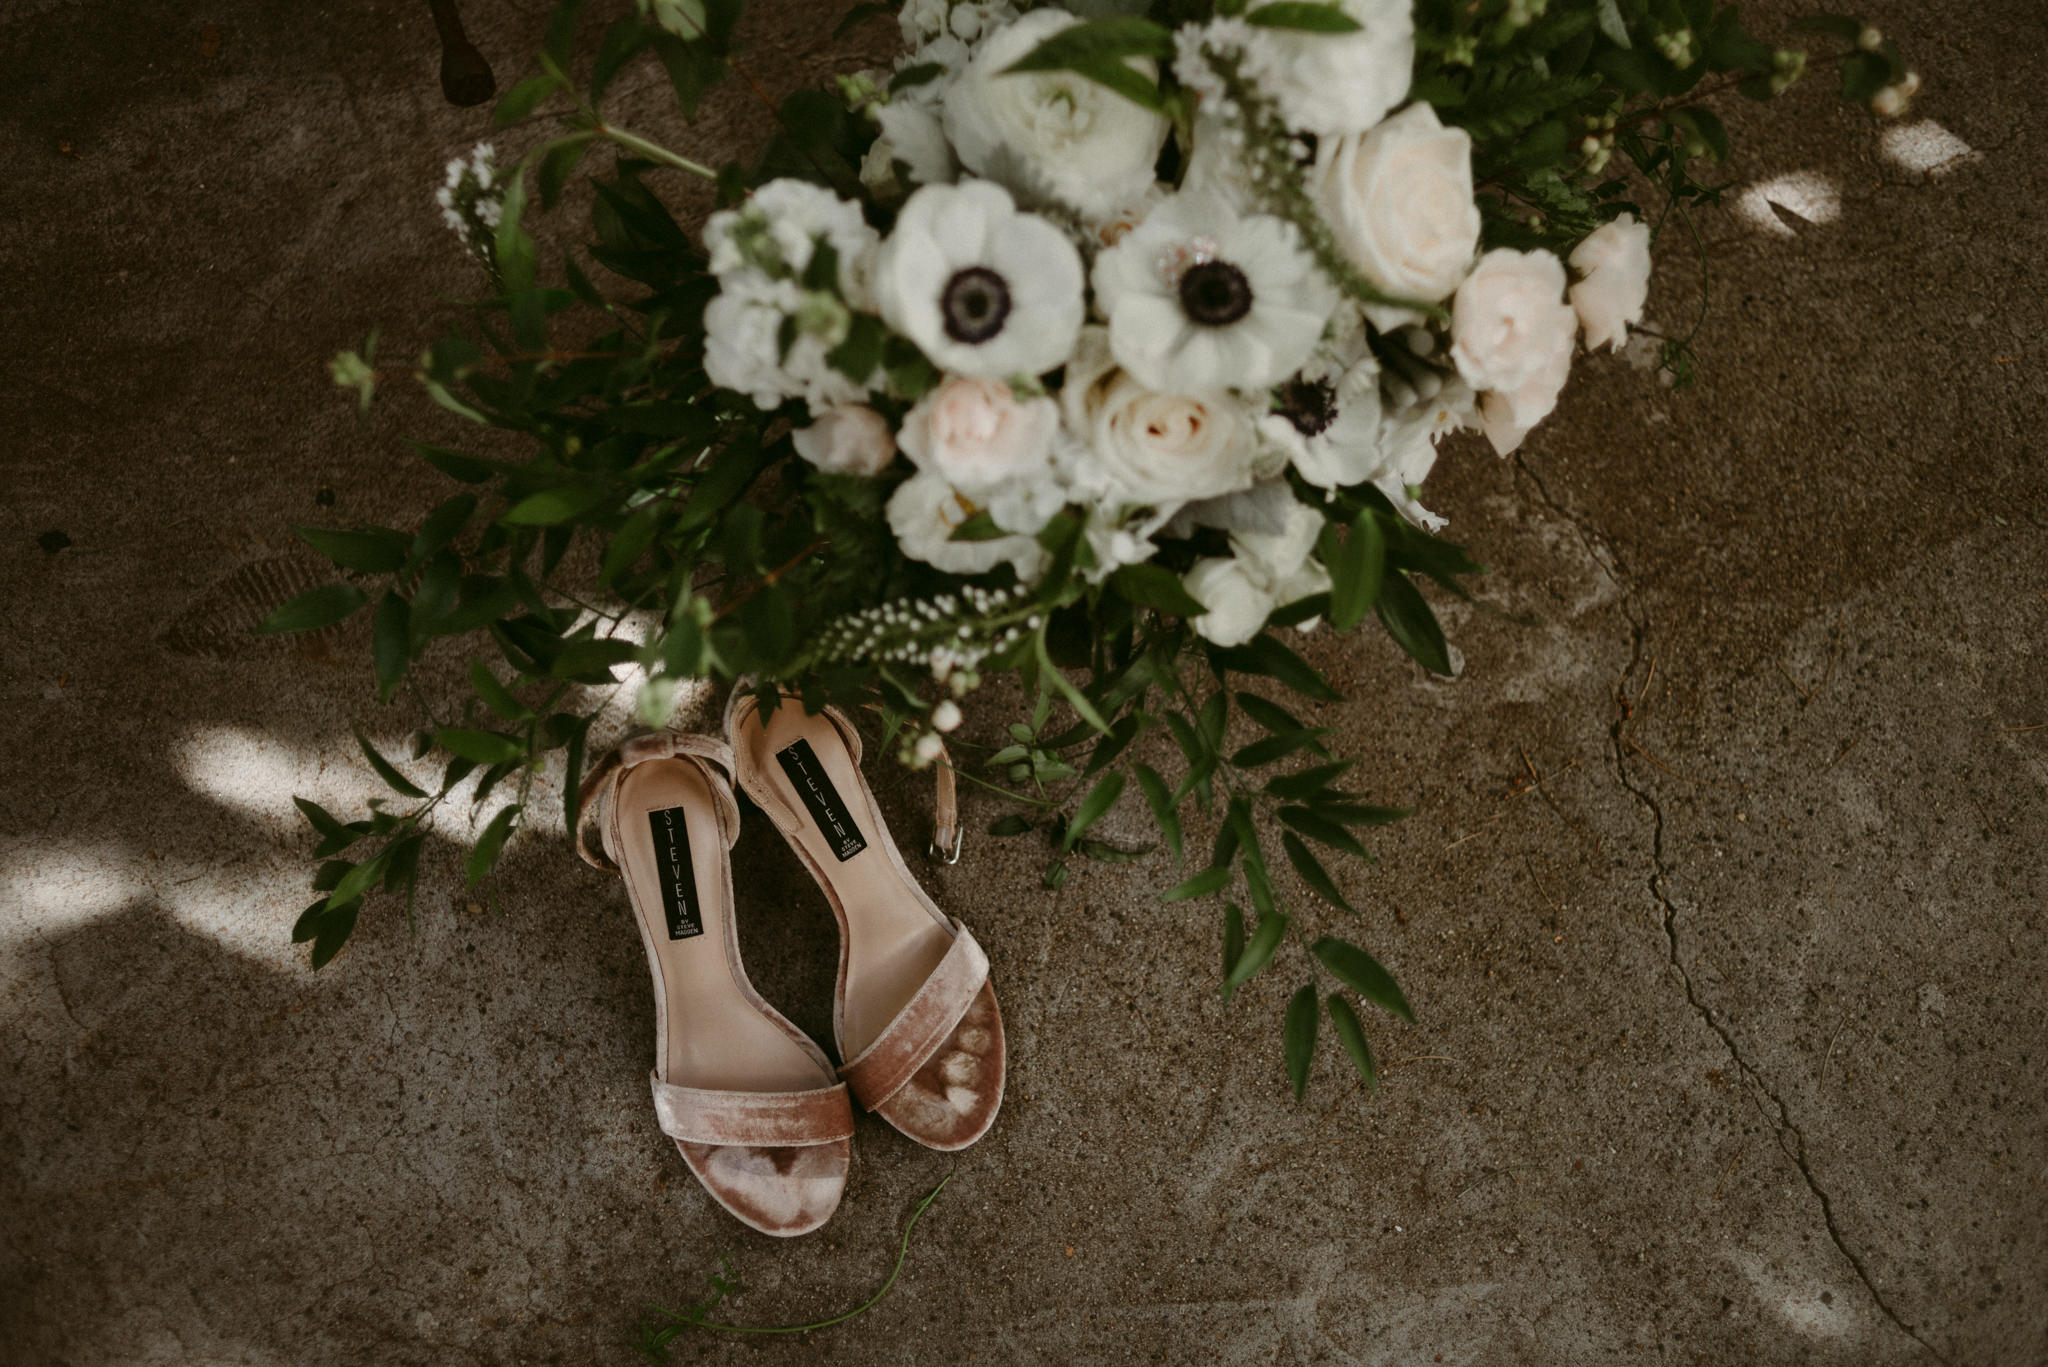 velvet shoes and wedding bouquet on concrete floor